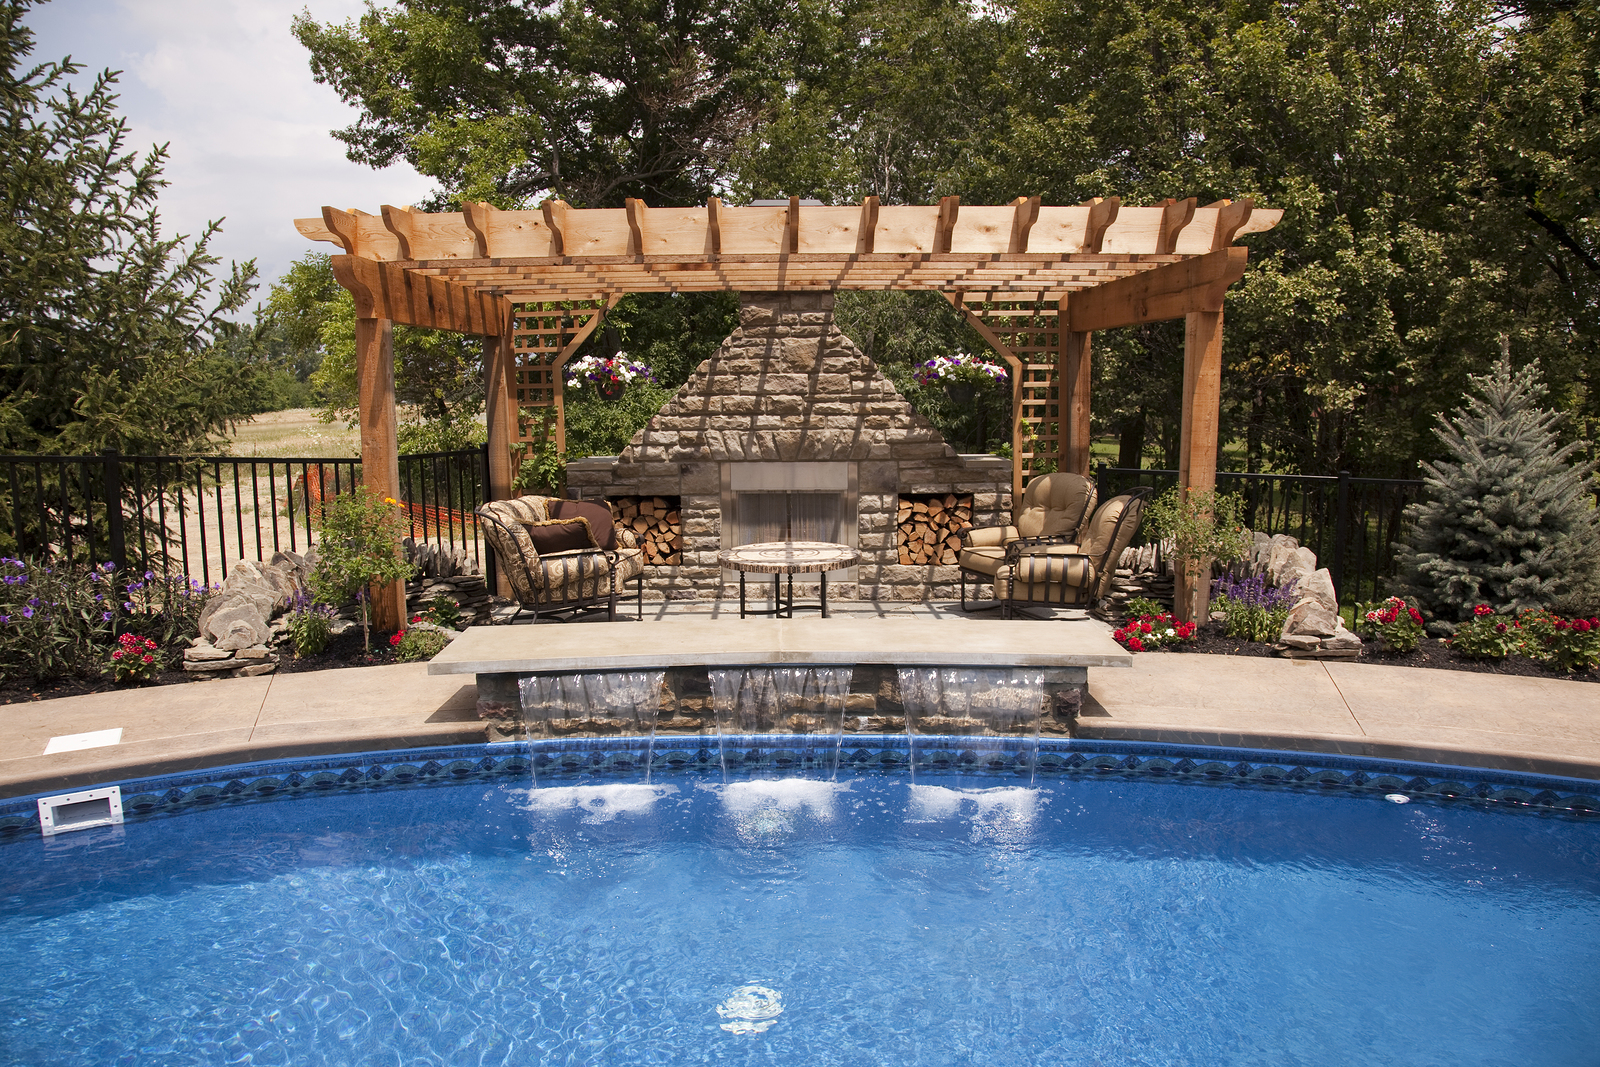 luxury backyard pool quest - Outdoor Backyard Pools